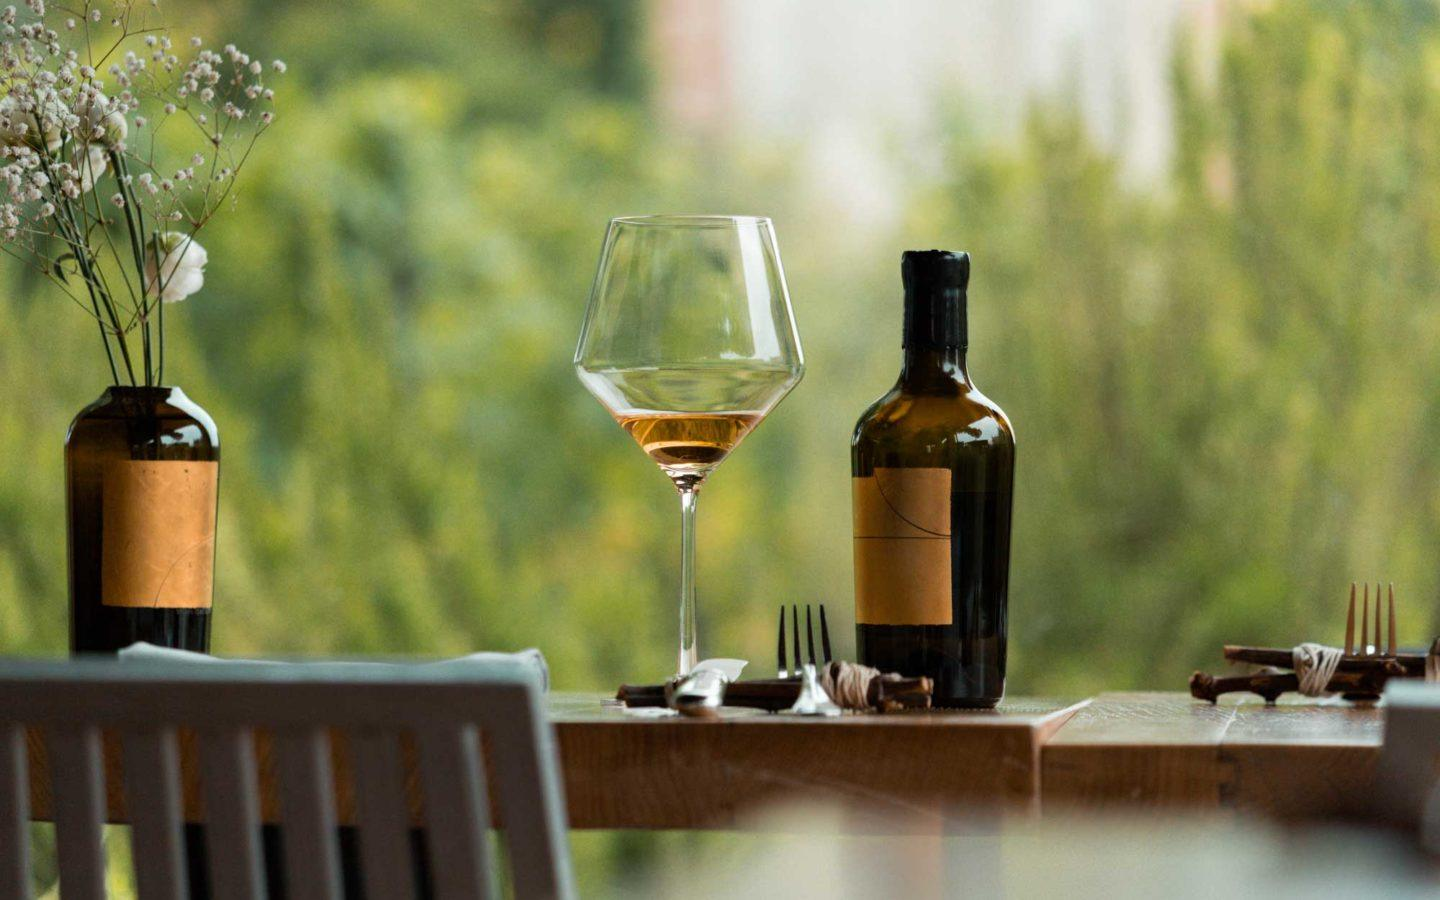 glass and bottle of wine sitting on wooden table